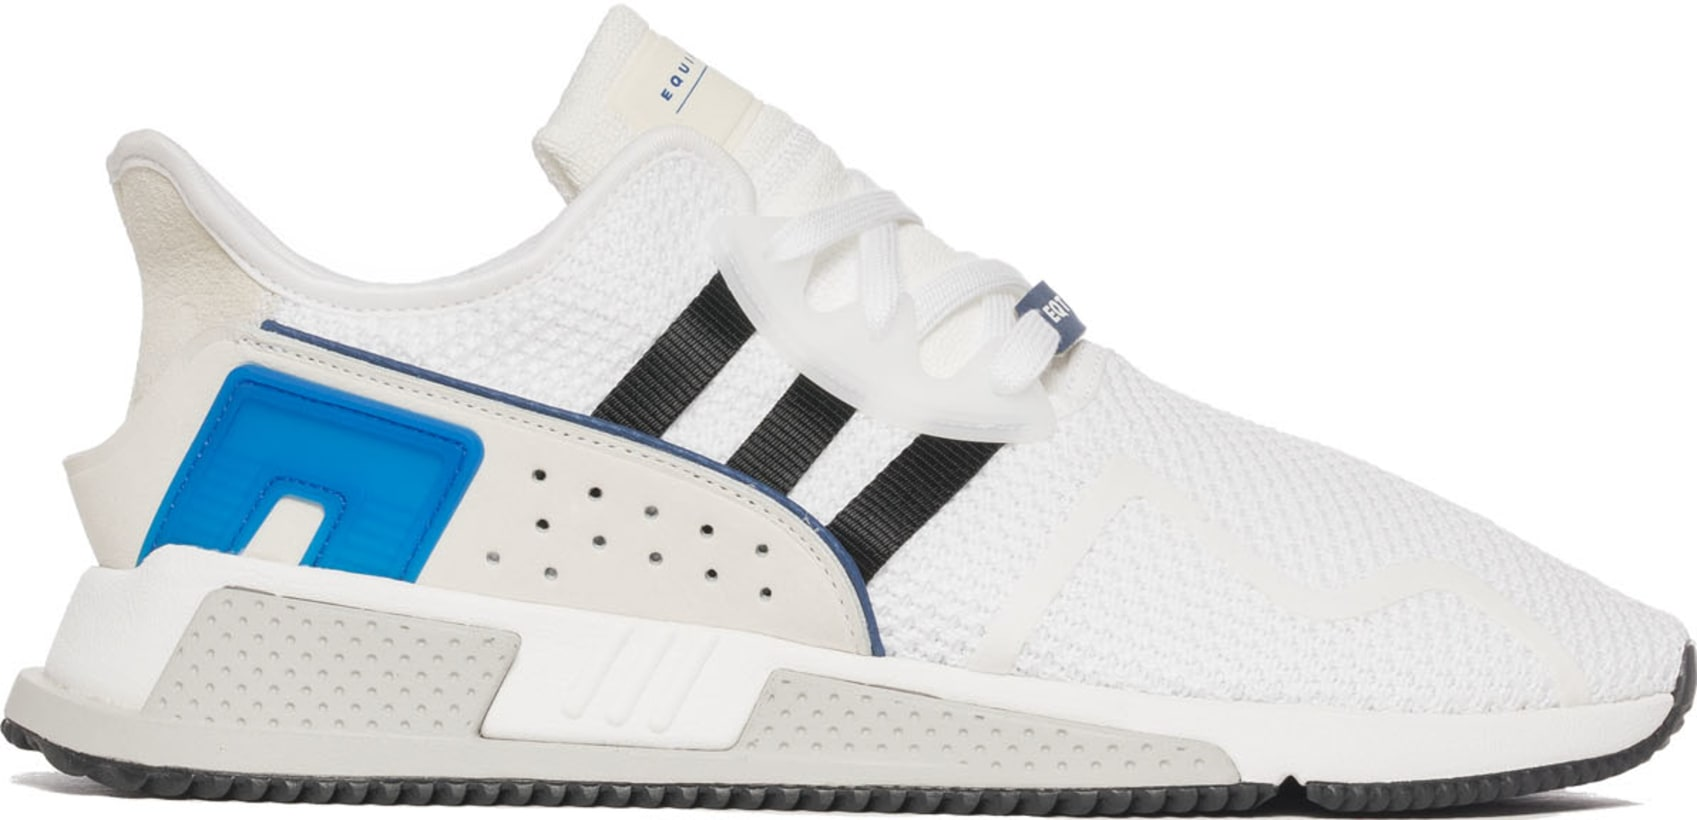 79f24d8a6ce5 adidas Originals. EQT Cushion ADV - Cloud White Core Black Collegiate Royal